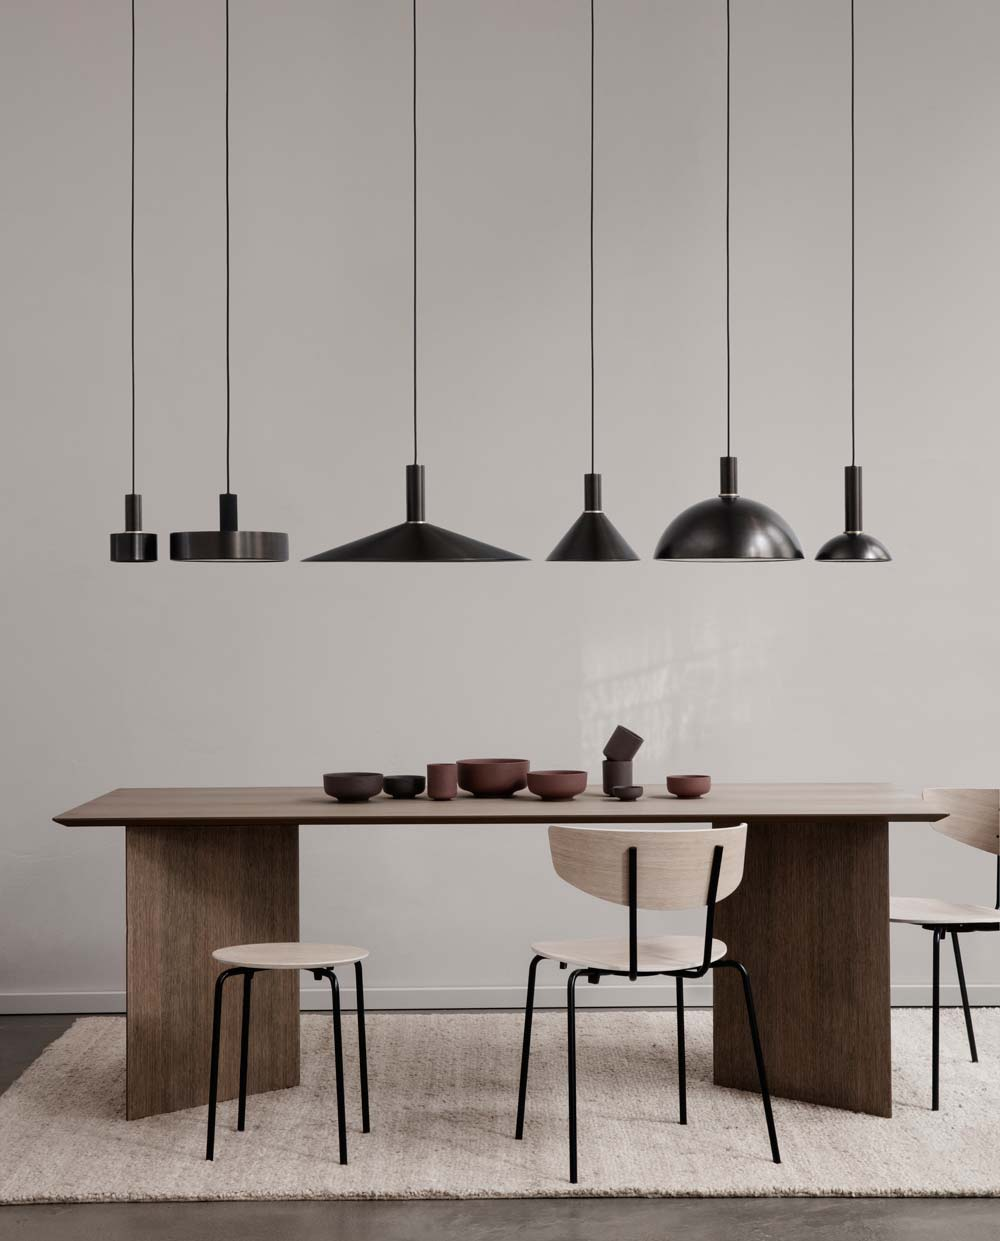 ferm Living collect lighting angle shade 100074 101 black 002